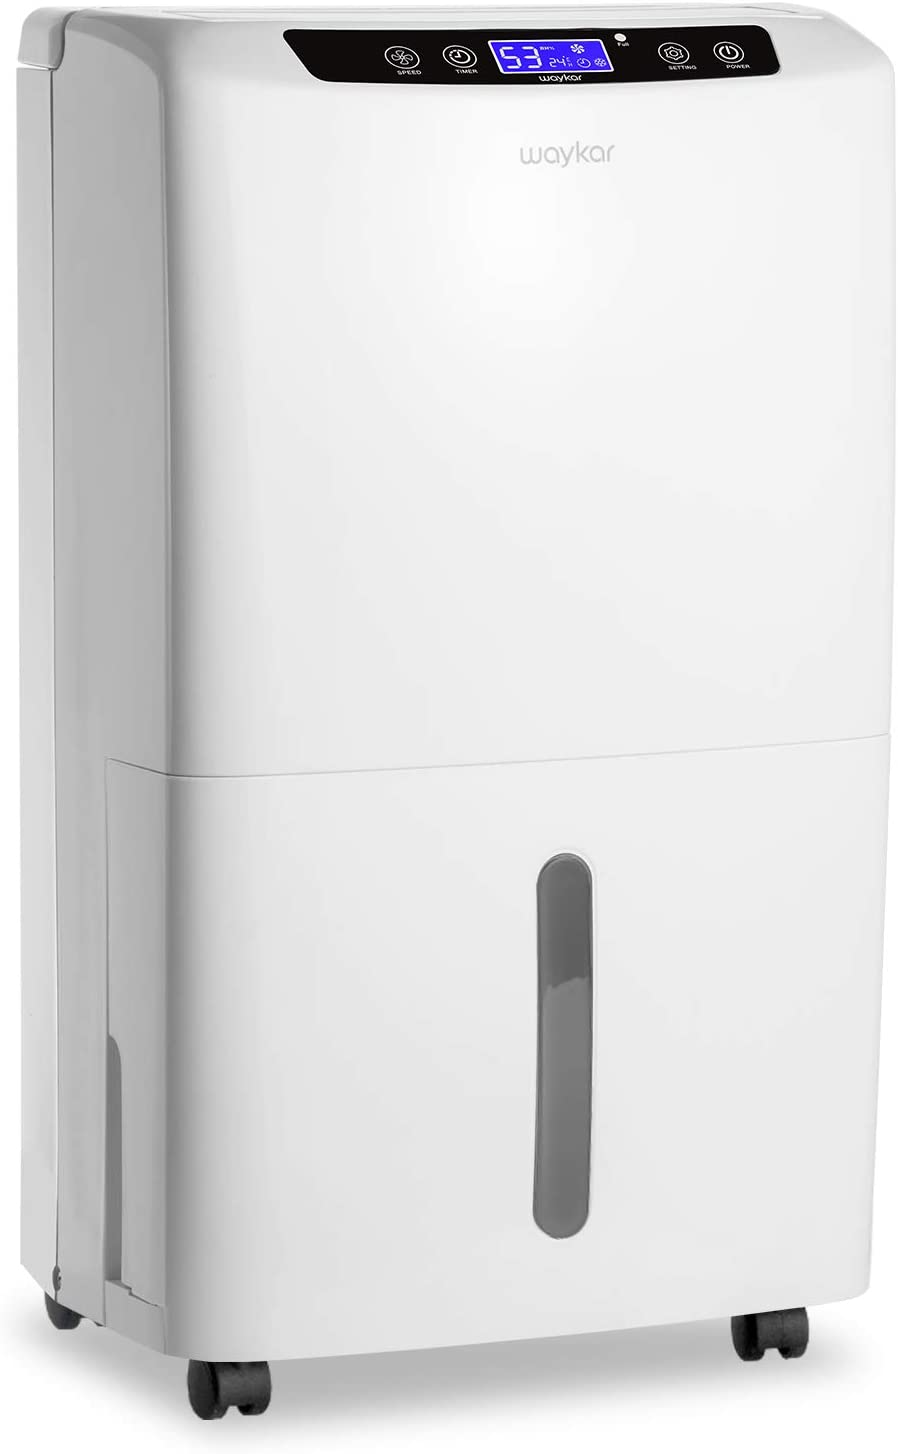 Waykar Super sale period limited 2000 Sq. Ft Dehumidifier for Bedroom Special sale item Home with Basements